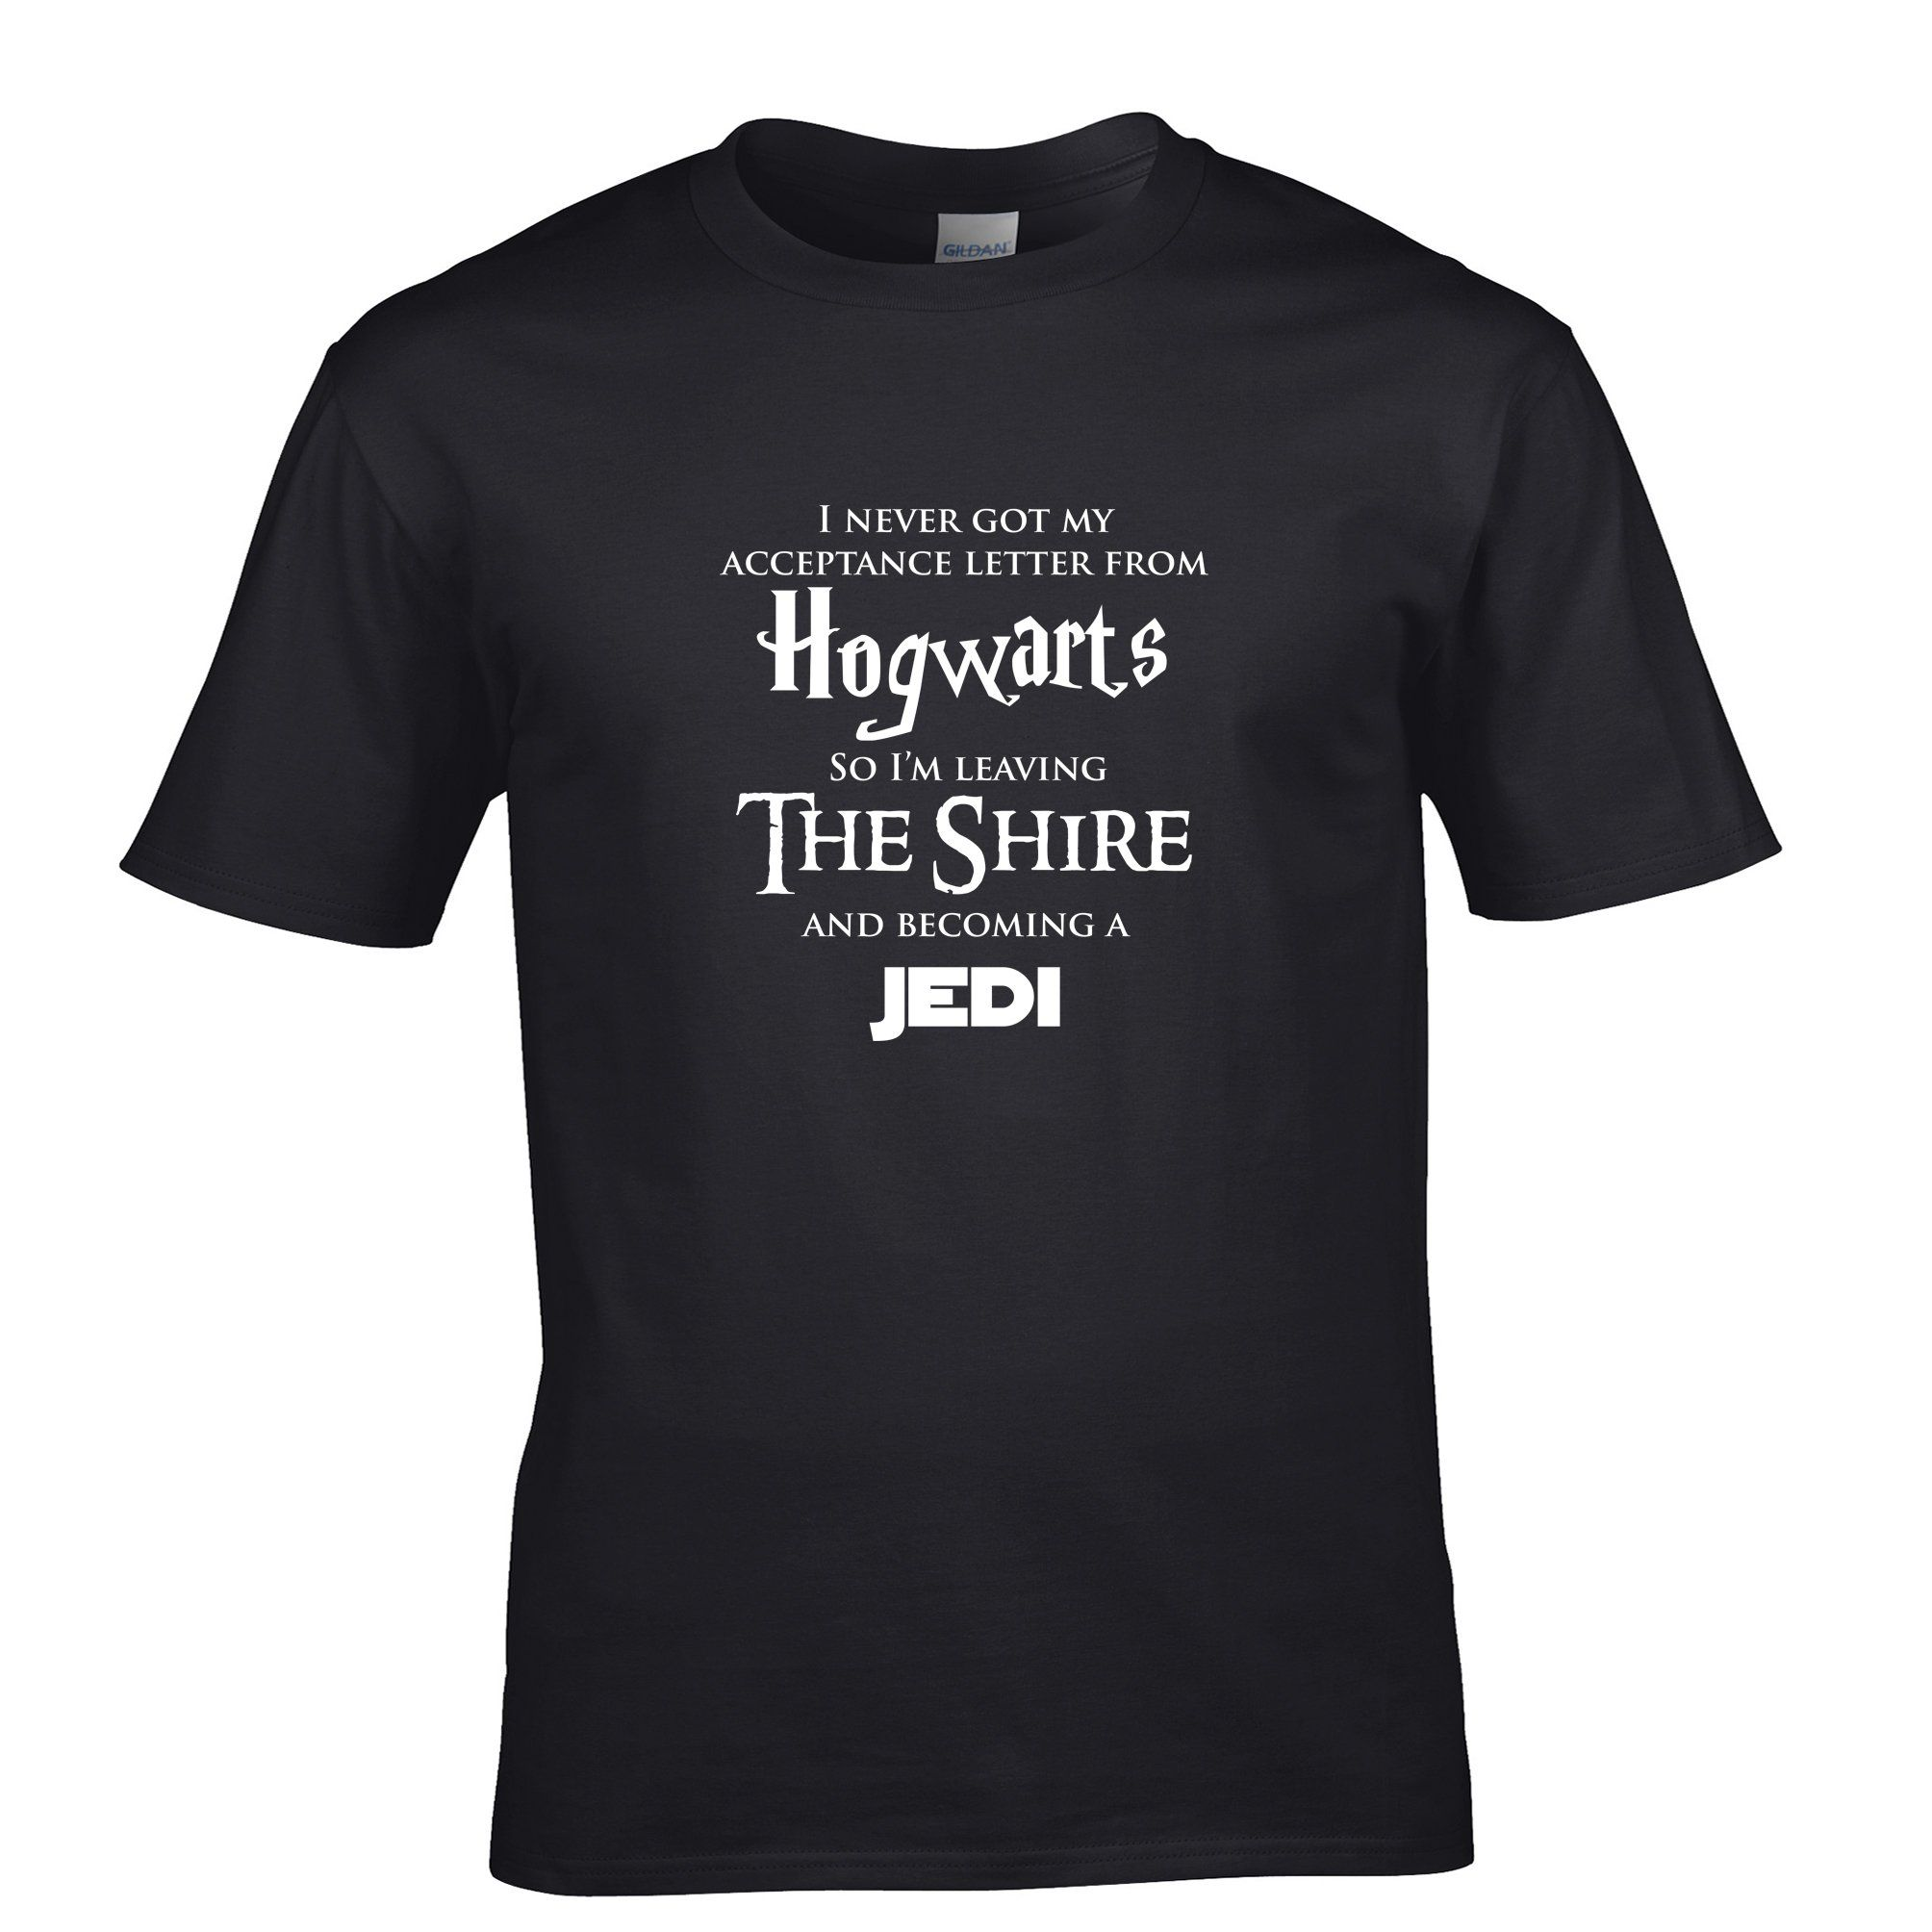 HOGWARTS LOTR JEDI Tshirt Star Wars Hobbit Harry Potter Lord of The Rings